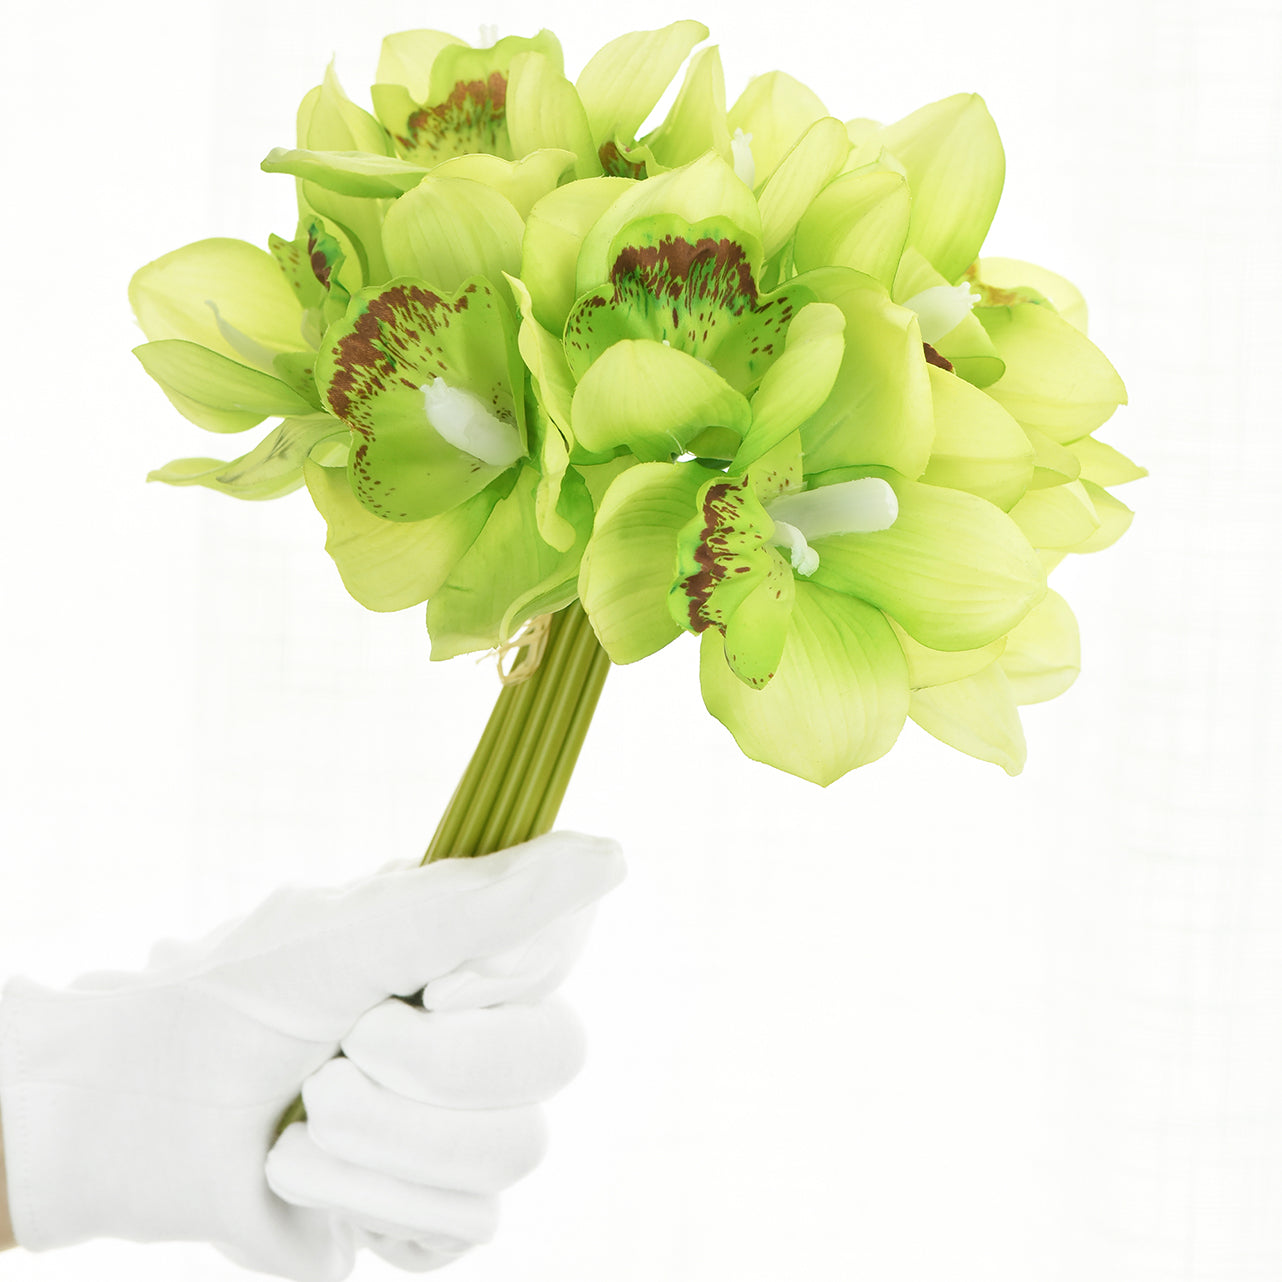 12 Stems Artificial Real Touch Green Cymbidium Flowers & Bouquet 9.1 Inches (23cm)